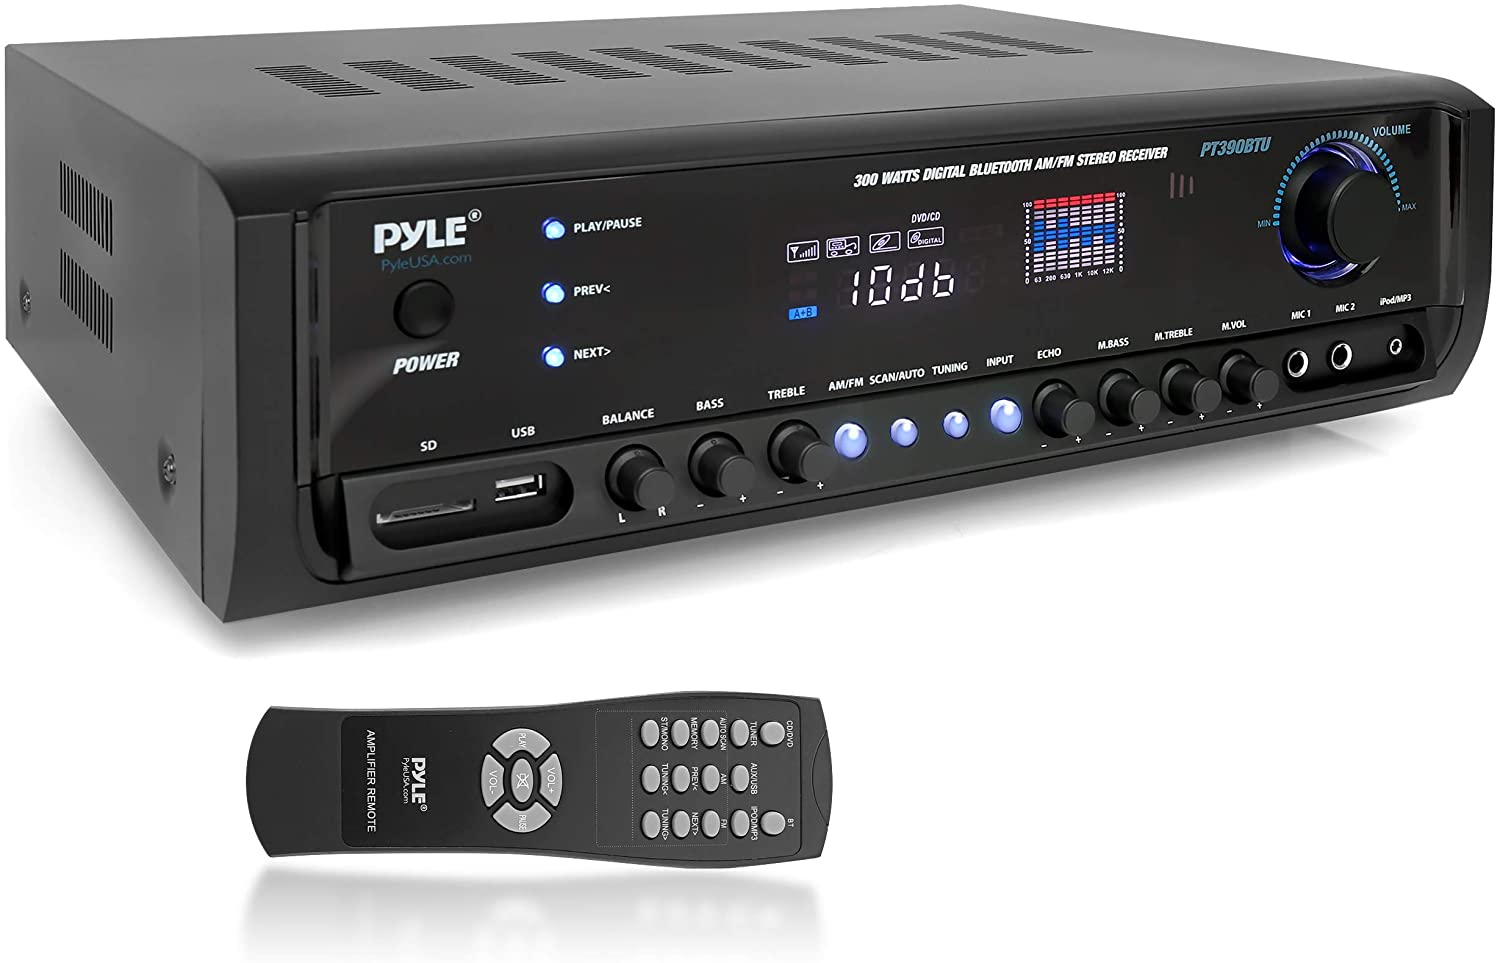 Pyle Wireless Bluetooth Power Amplifier System 300W 4 Channel Home Theater Audio Stereo Sound Receiver Box Entertainment w/ USB, RCA, 3.5mm AUX, LED, Remote for Speaker, PA, Studio- PT390BTU,BLACK